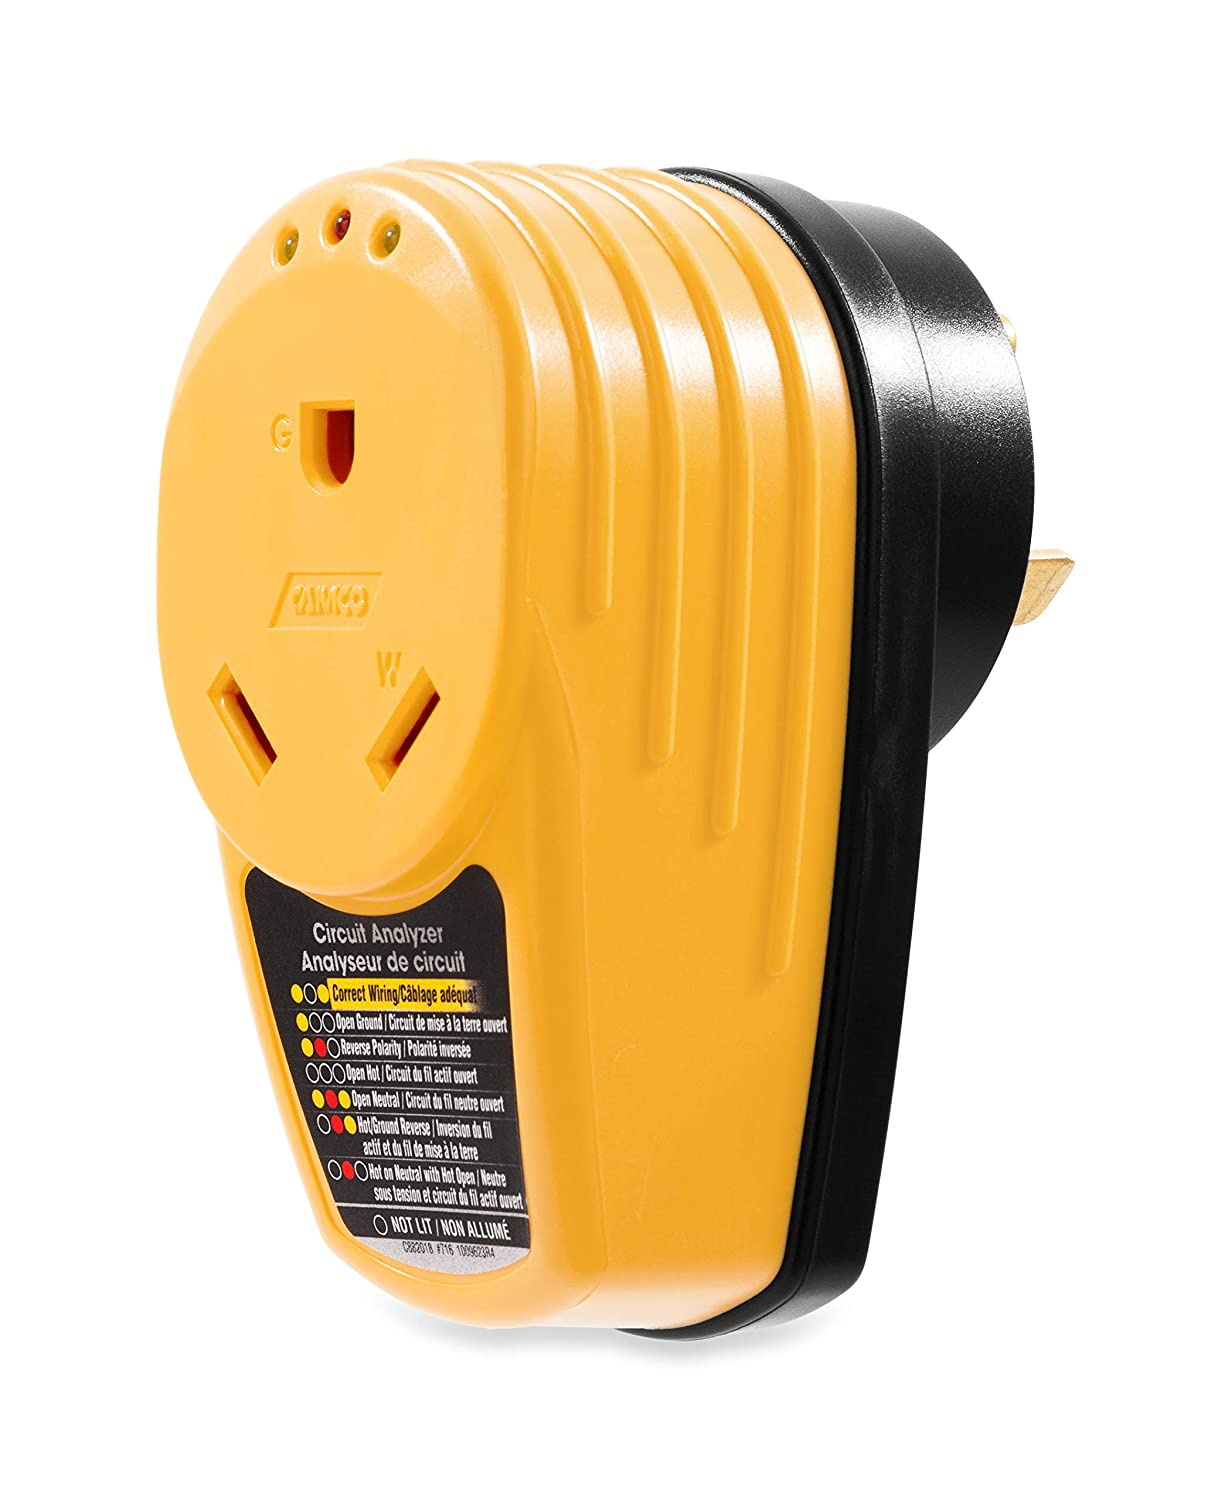 3 Best Rv Surge Protectors 2020 The Drive